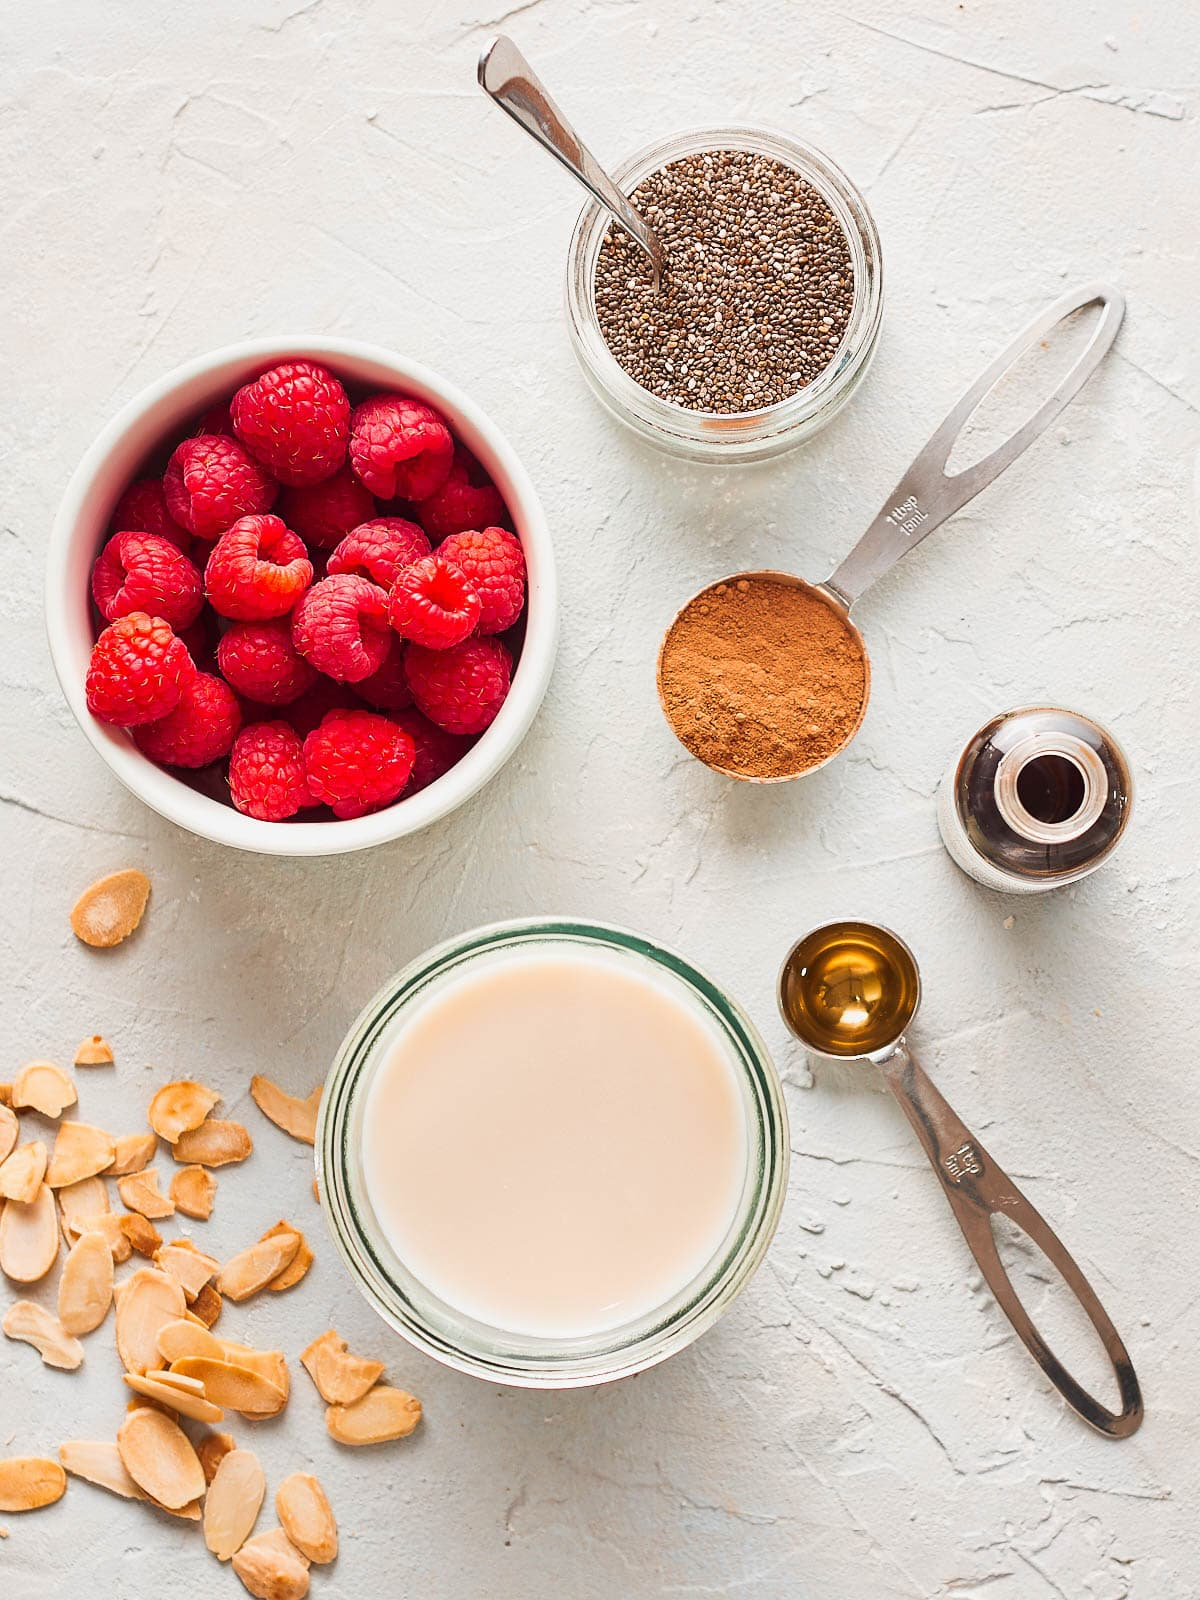 Ingredients for chia seed parfait